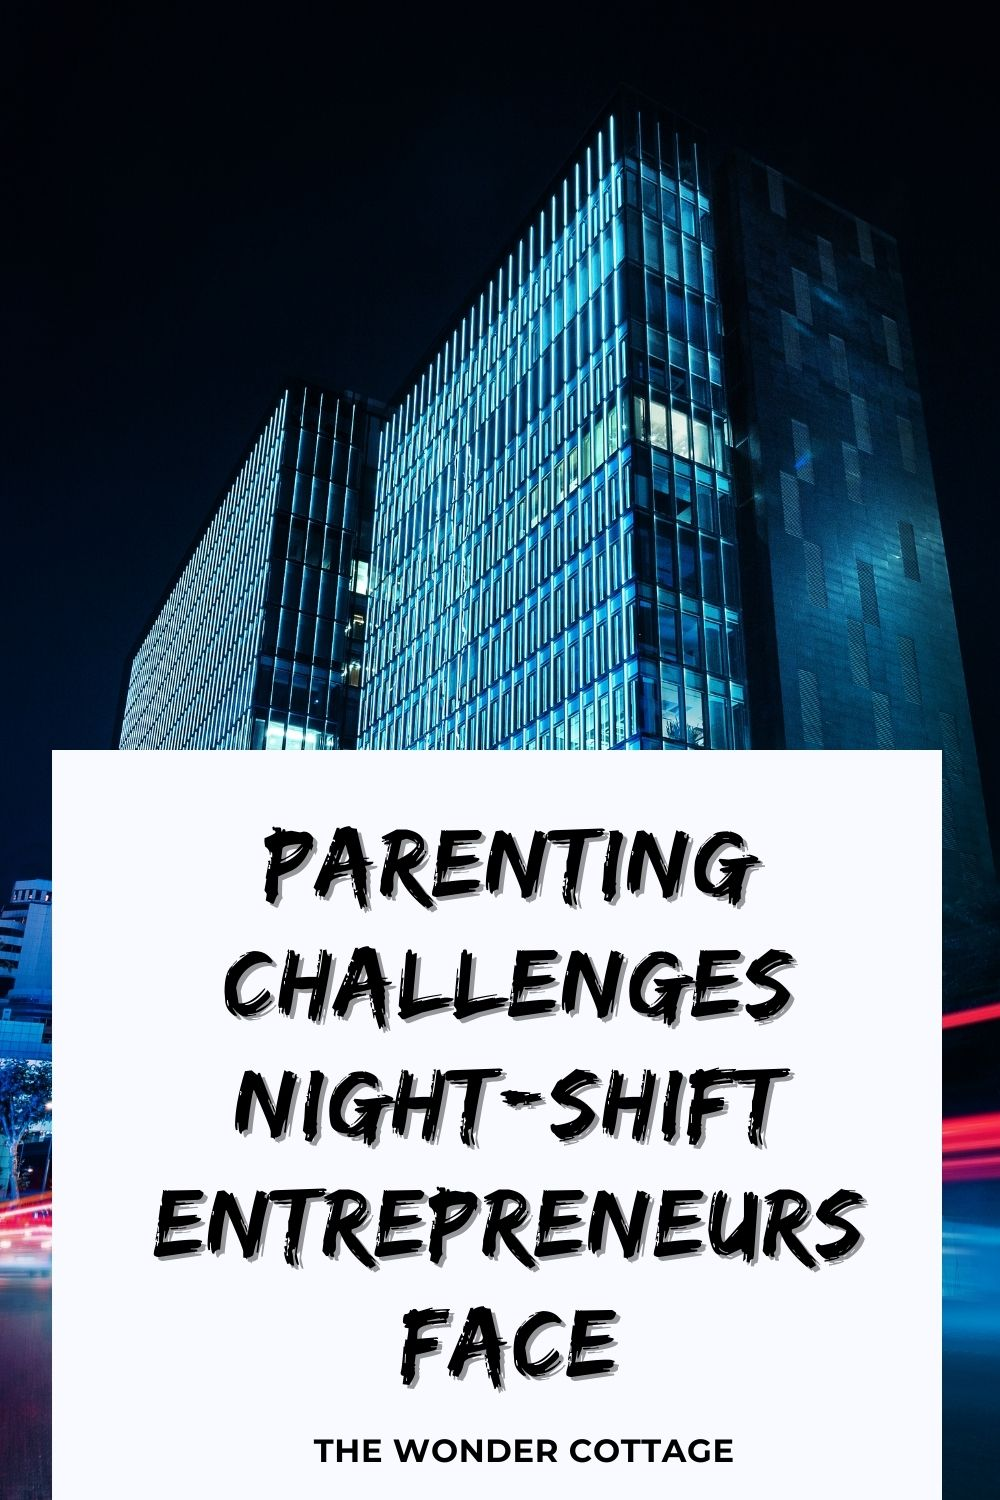 challenges of night-shift parents